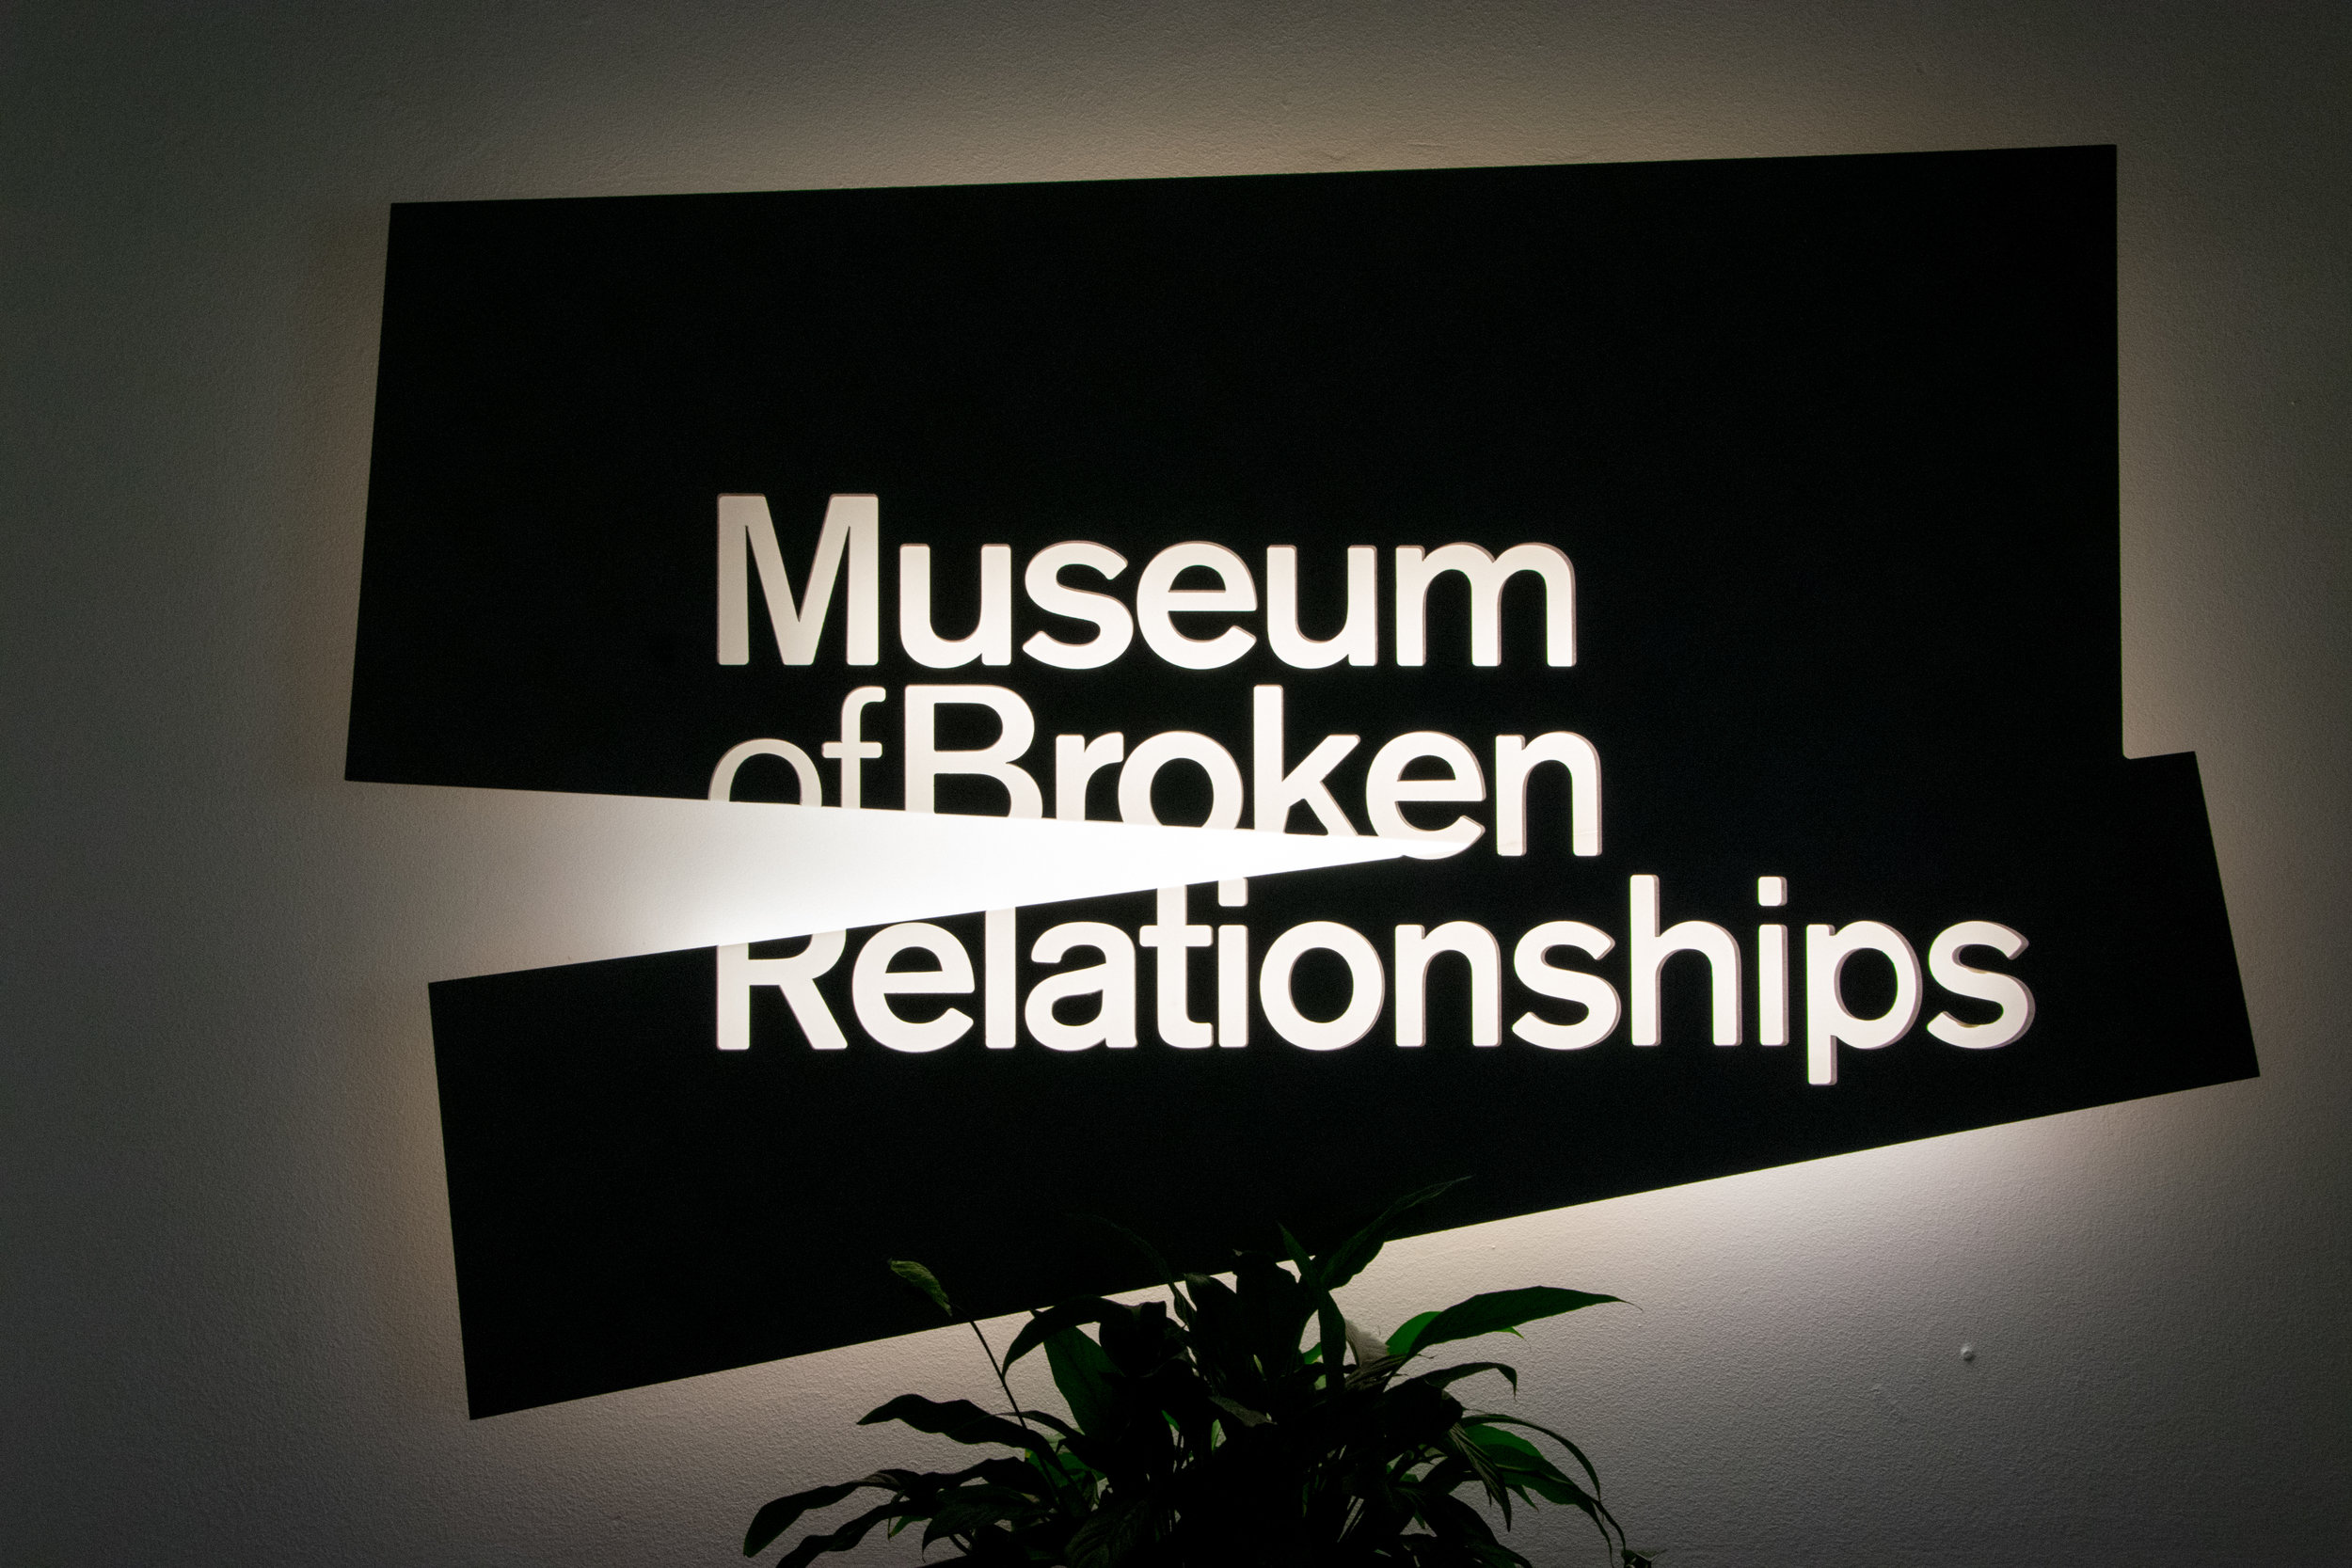 Broken Relationships-1-3.jpg